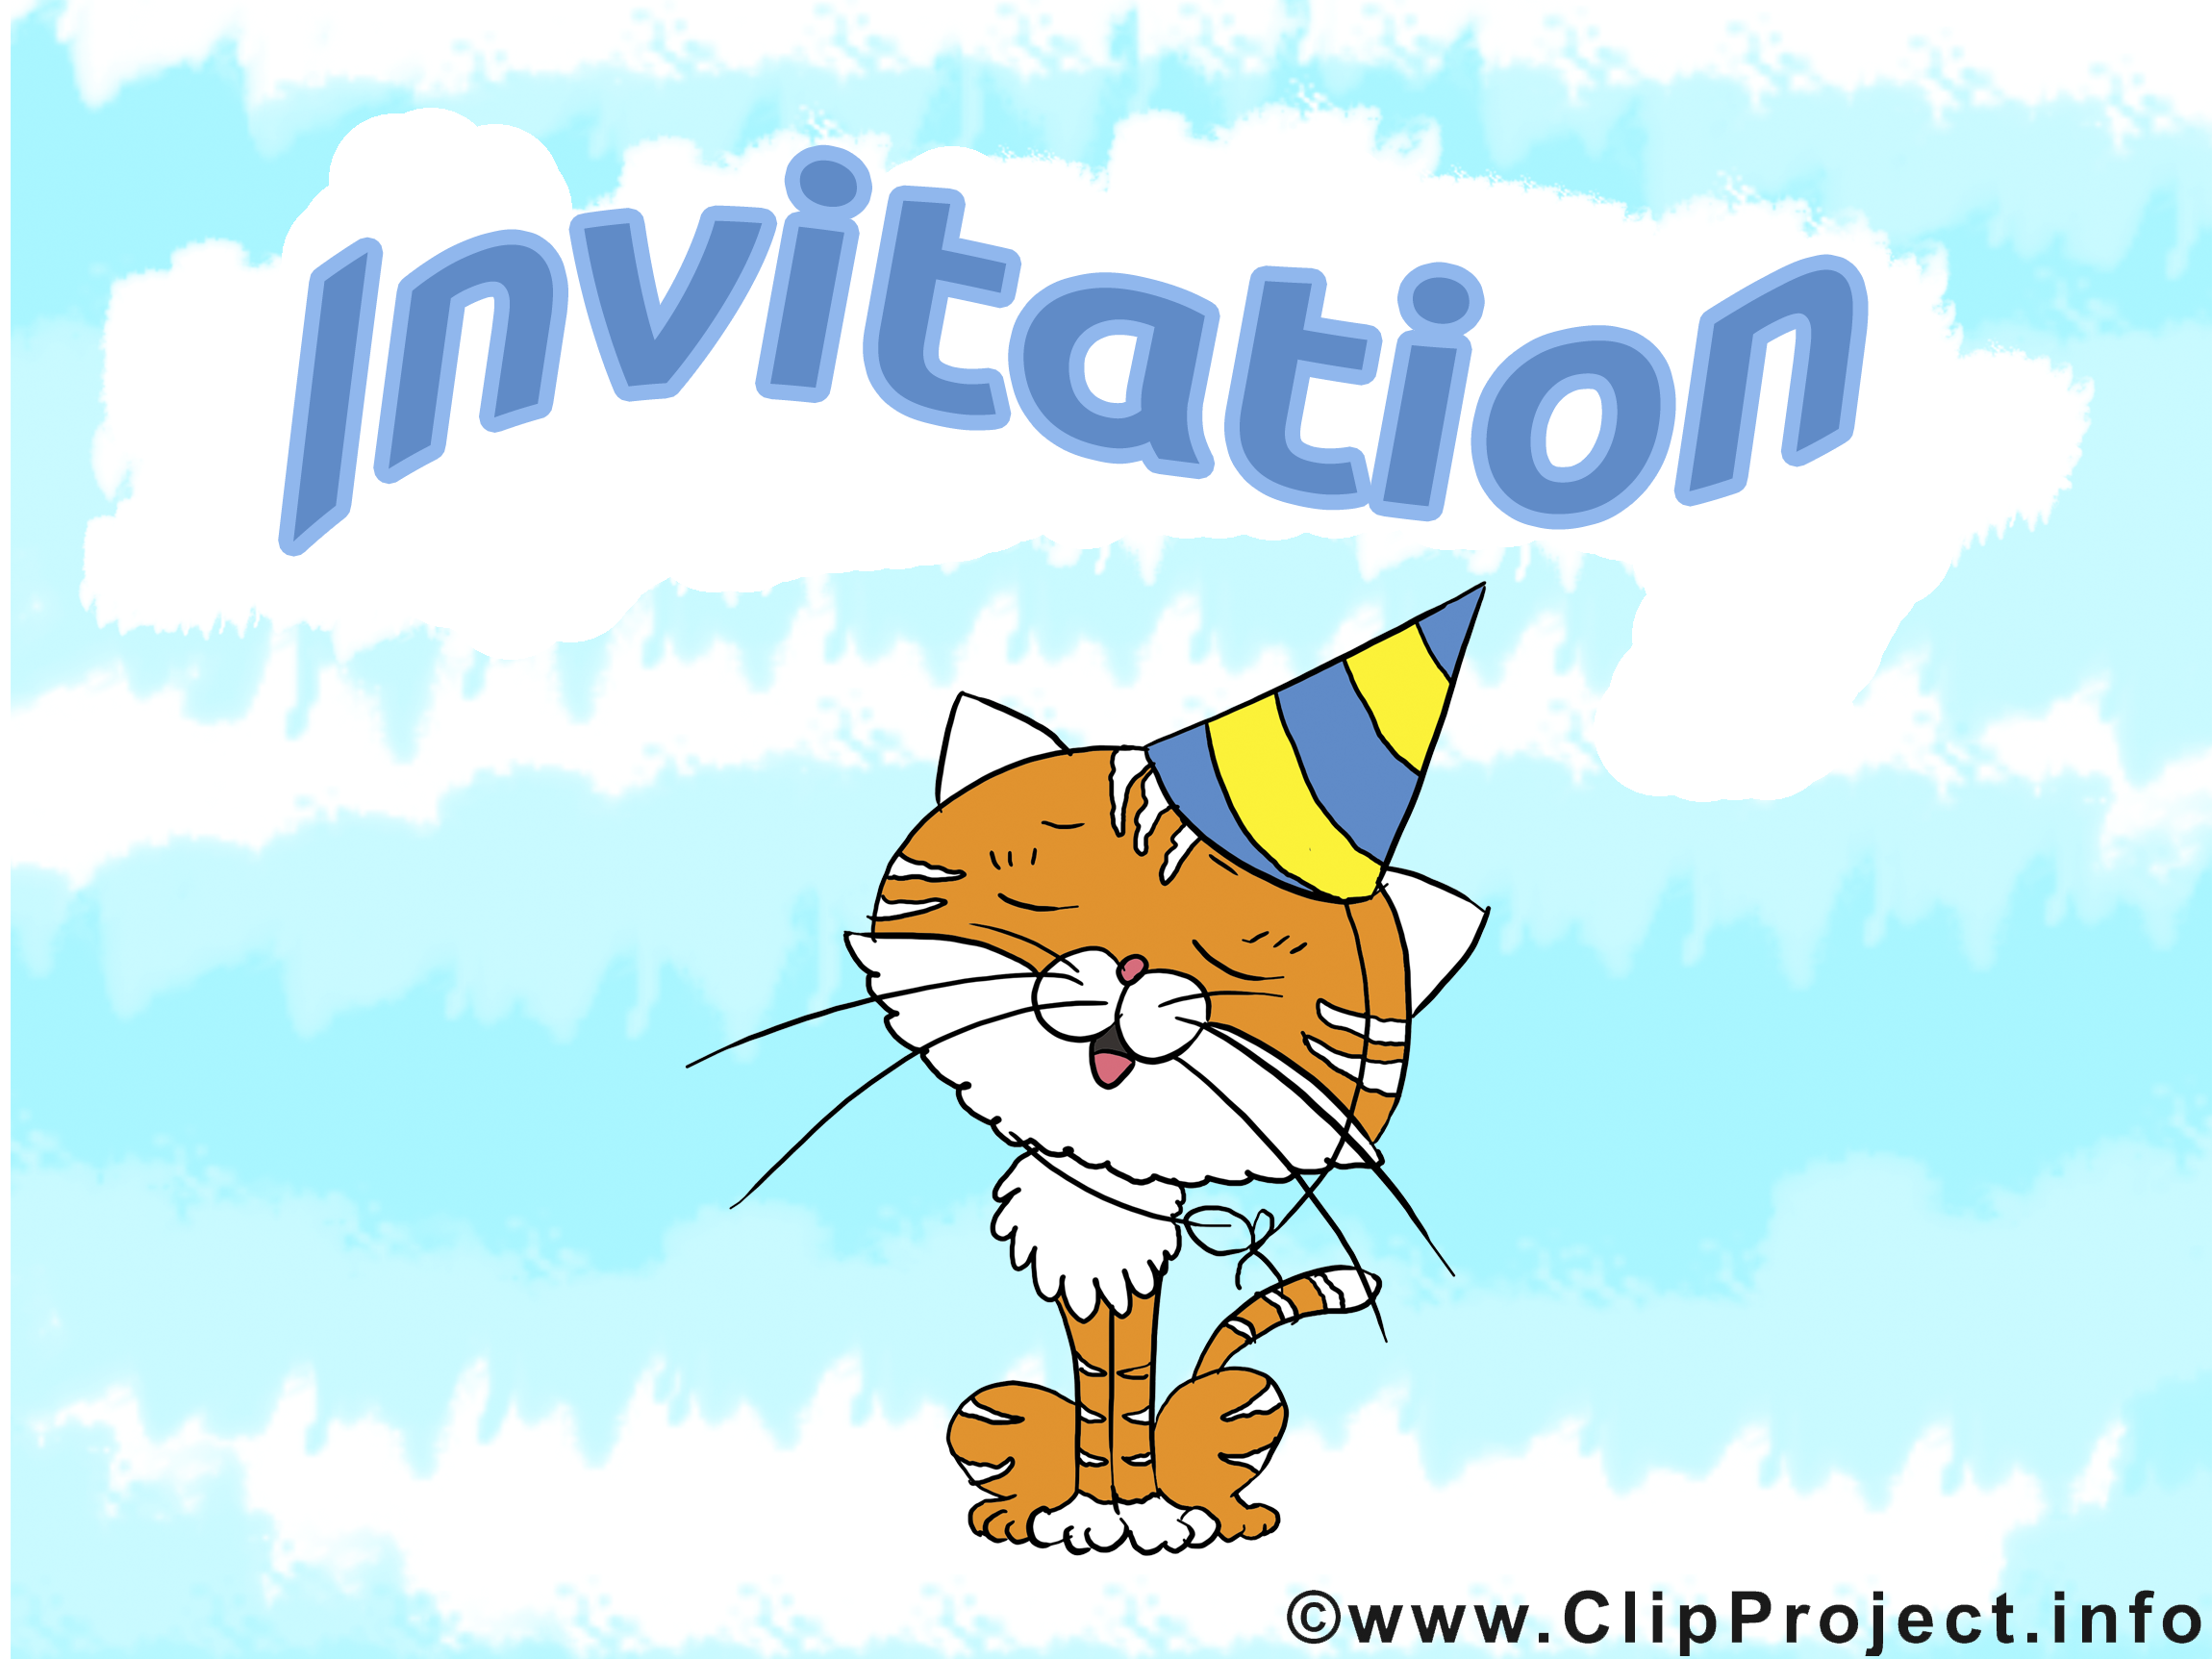 Chat clip art gratuit - Invitation dessin